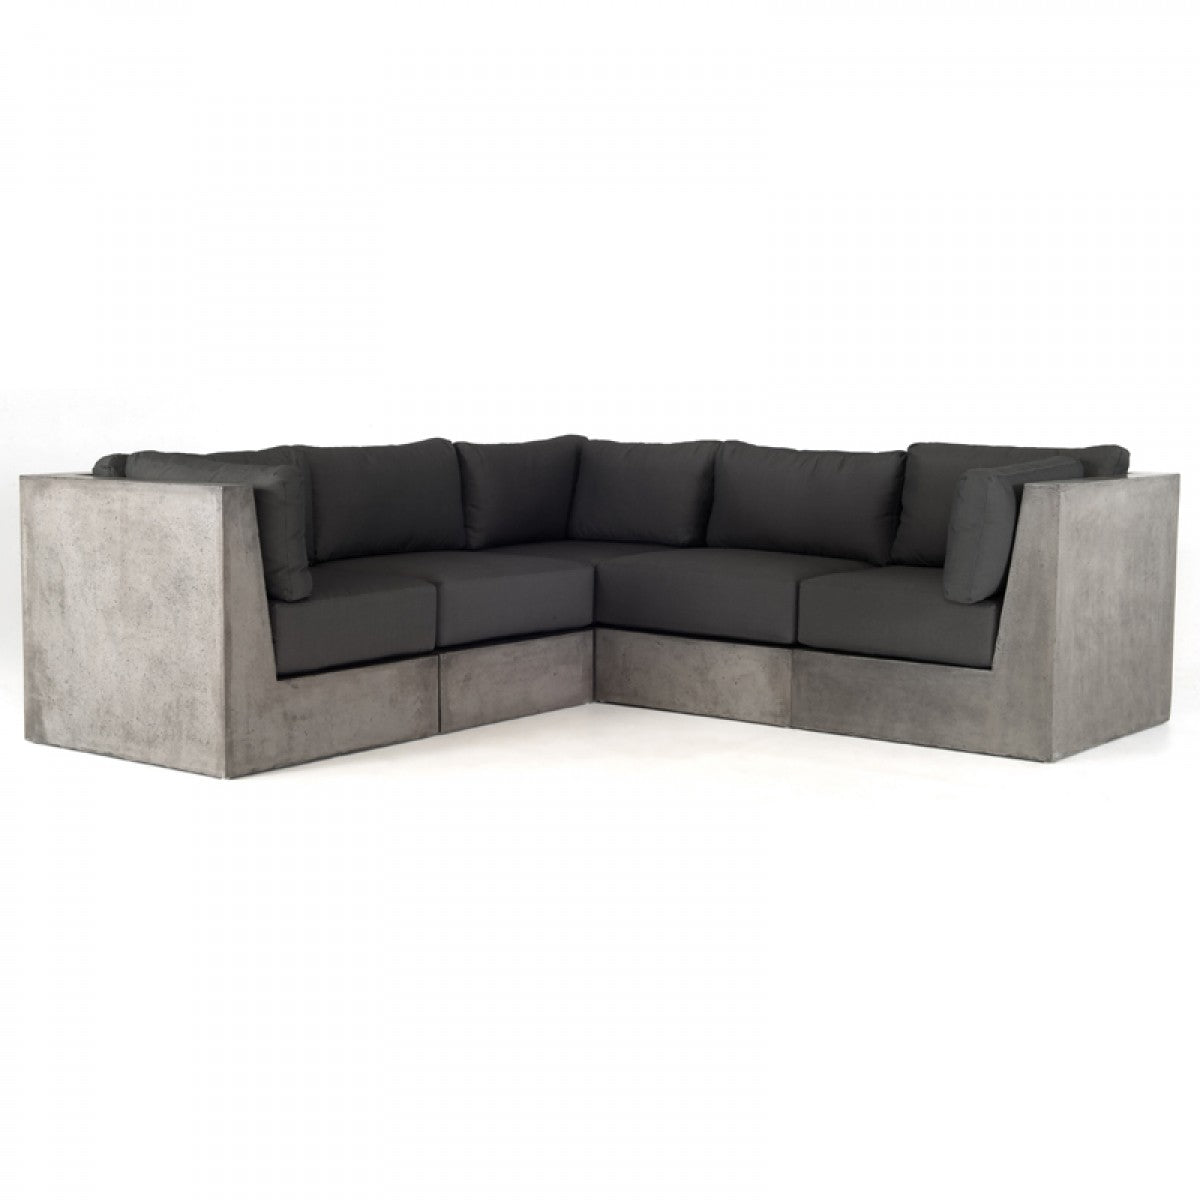 Dark Grey Sectional Sofa with Concrete Base